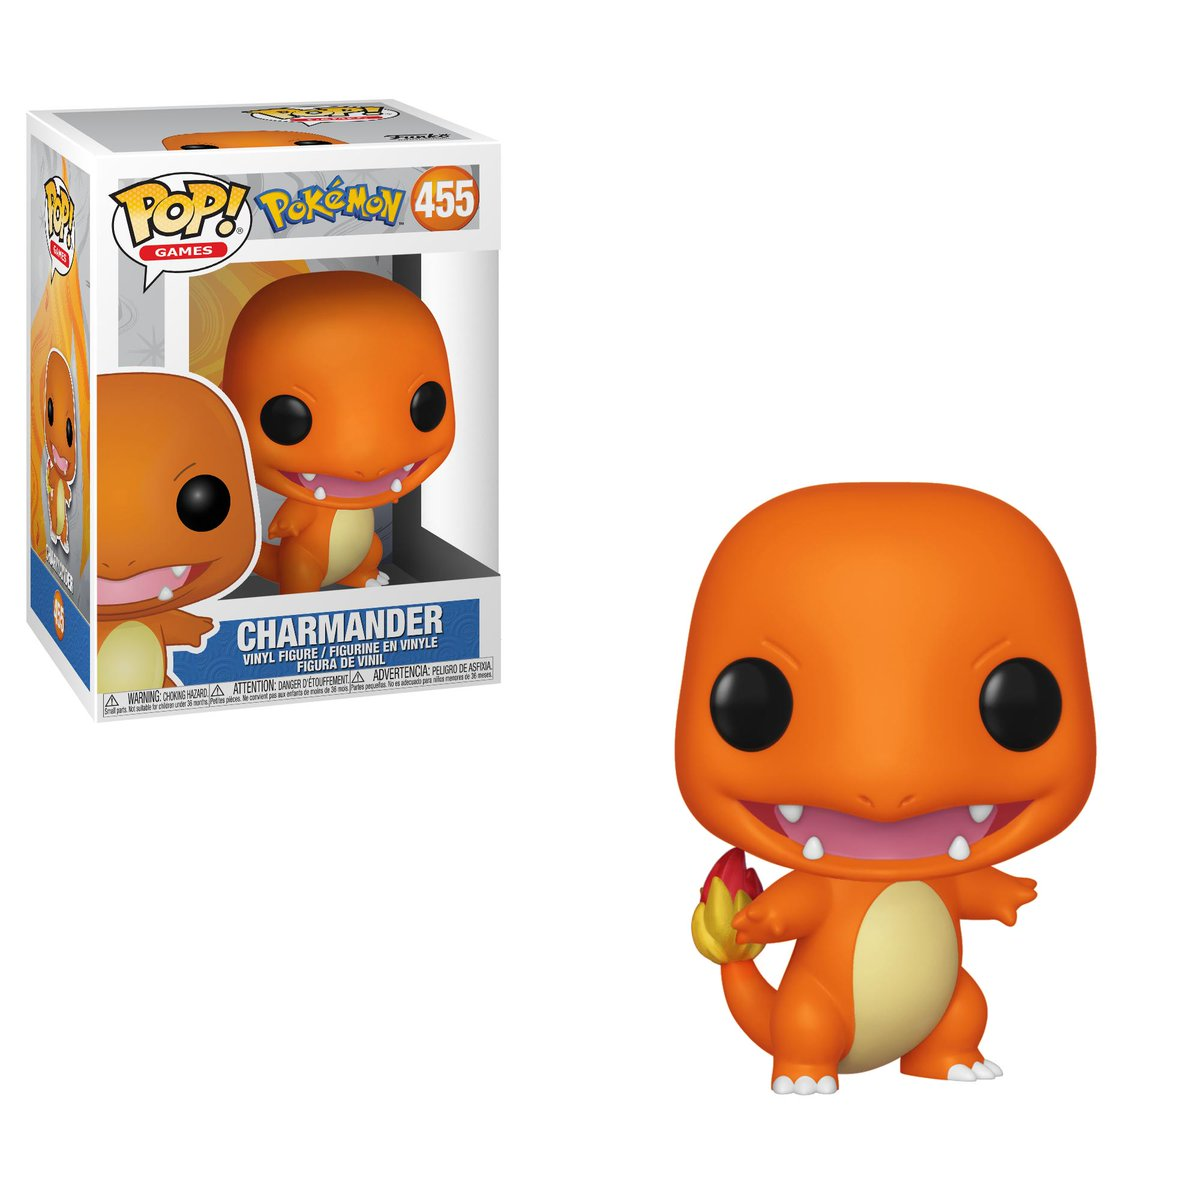 RT & follow @OriginalFunko for a chance to win a Charmander Pop!